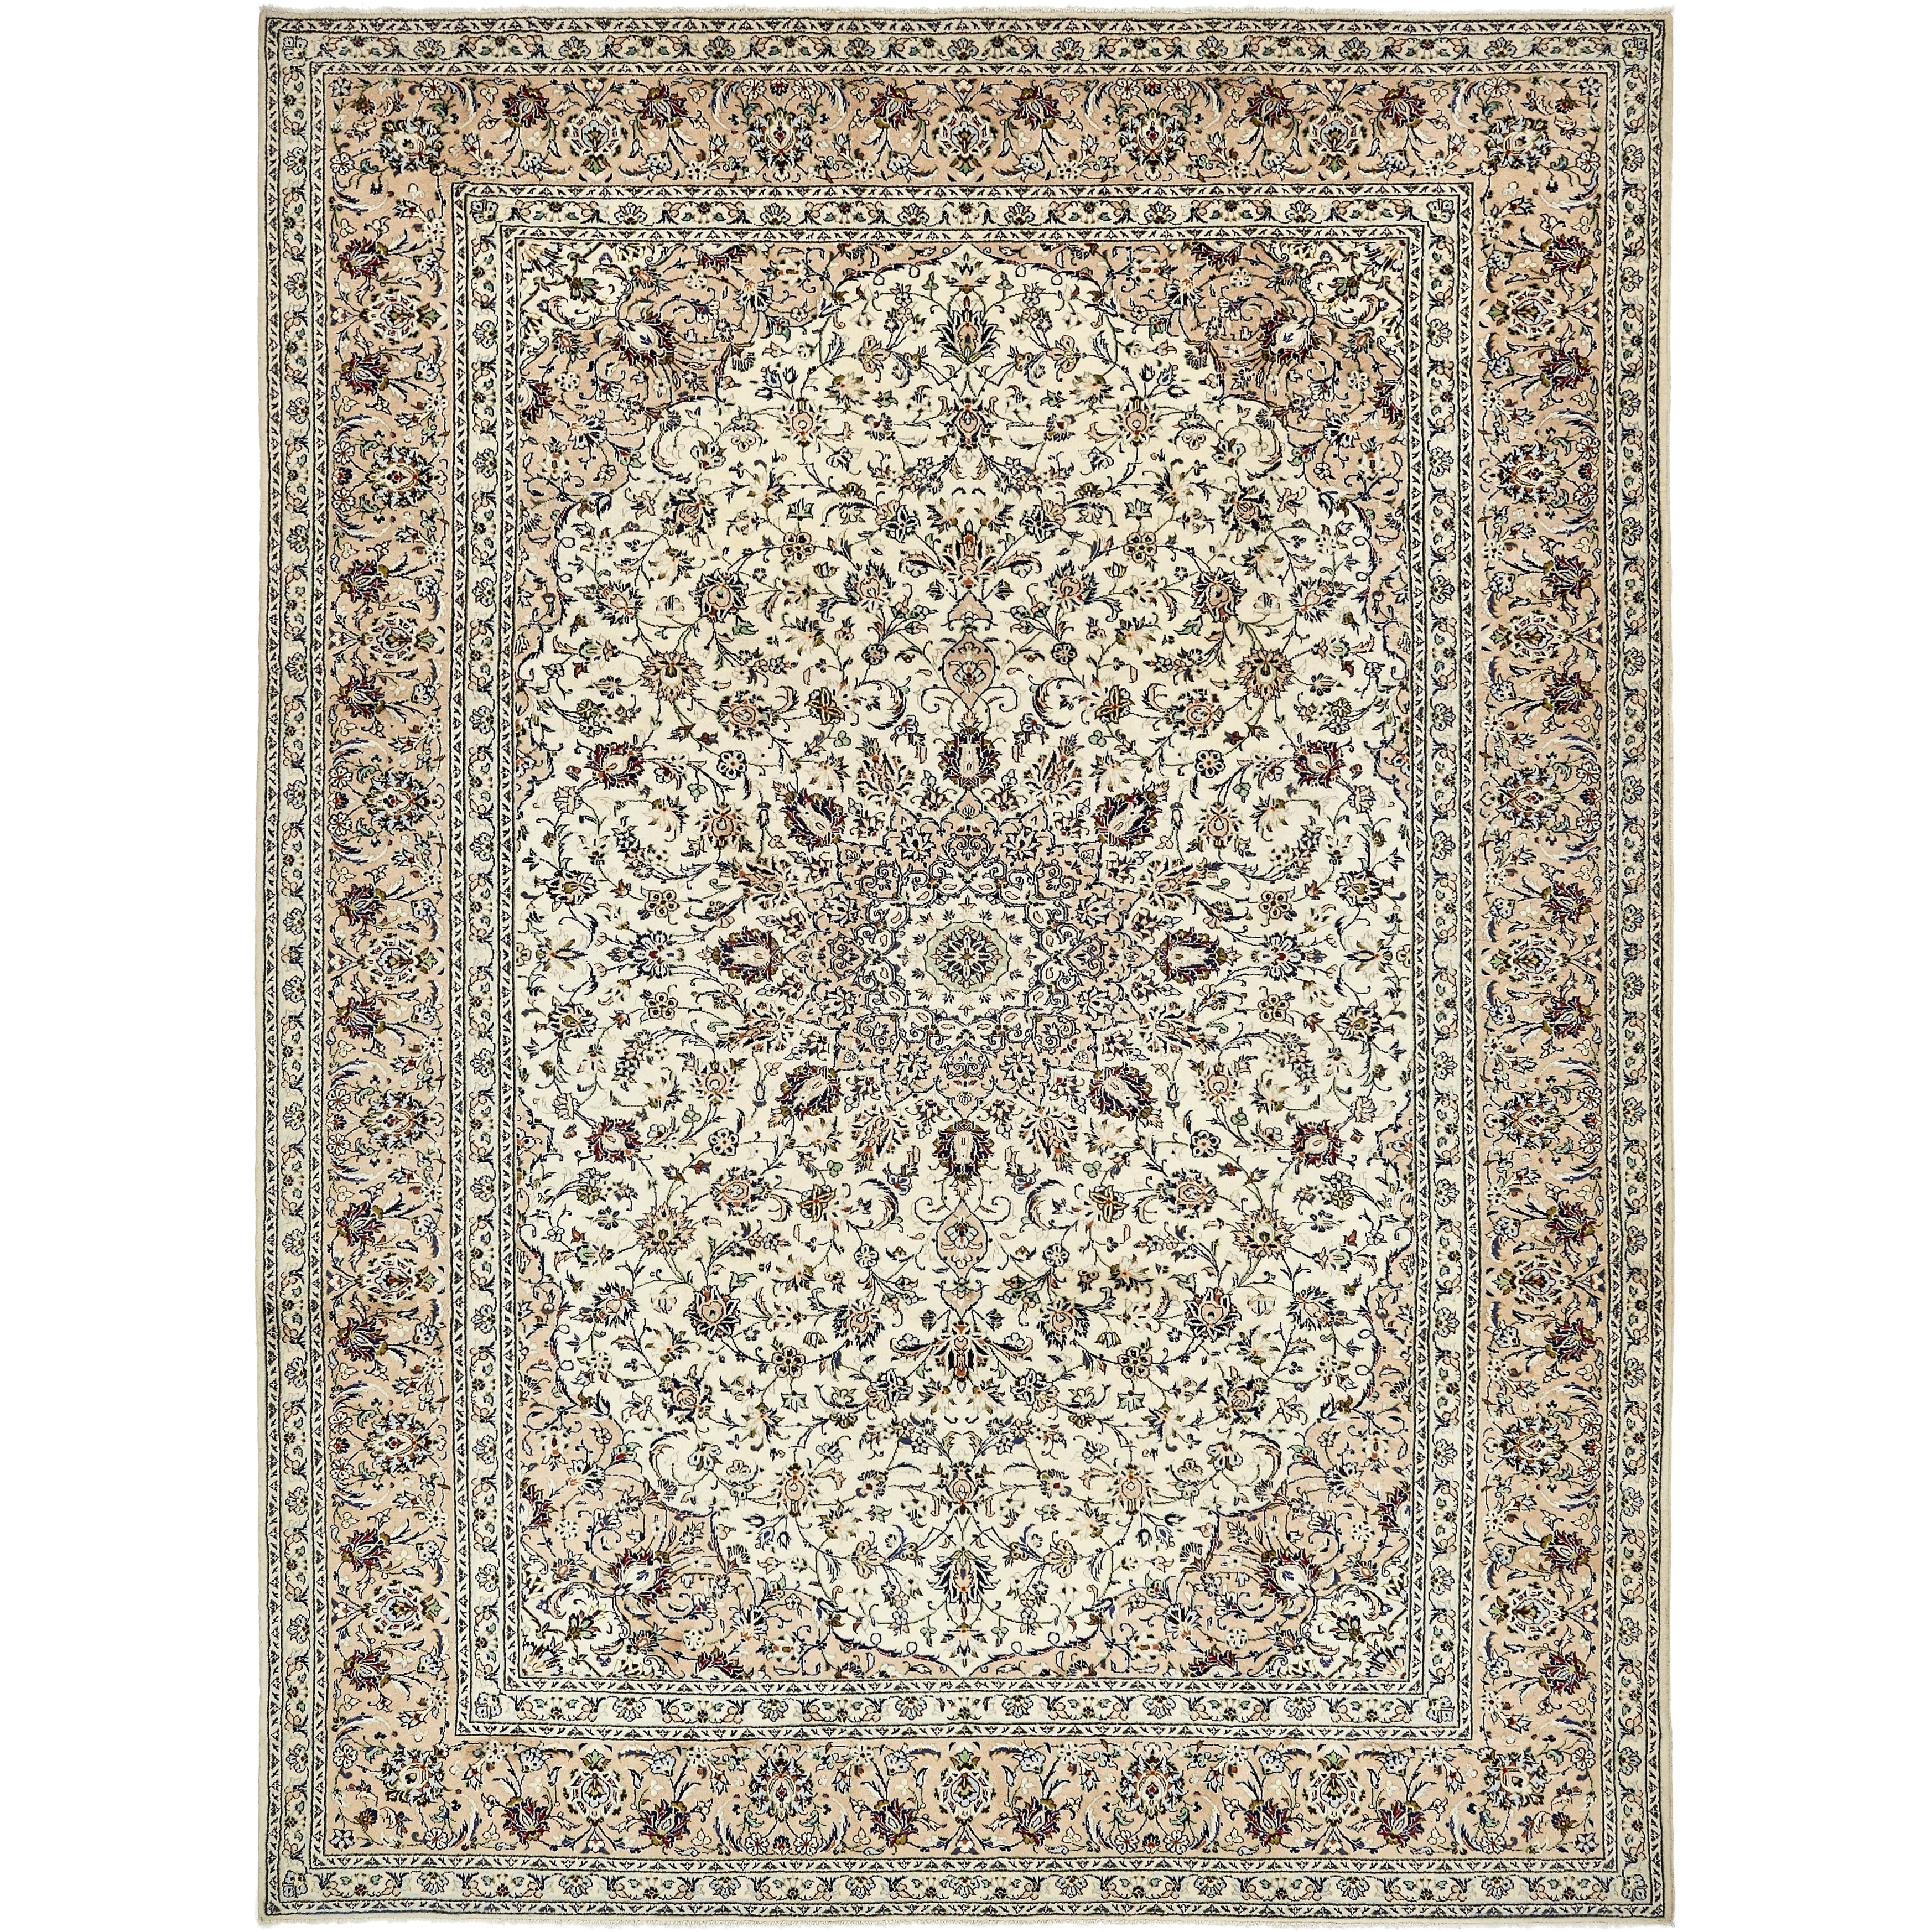 Hand Knotted Kashan Semi Antique Wool Area Rug - 9 8 x 13 4 (Cream - 9 8 x 13 4)